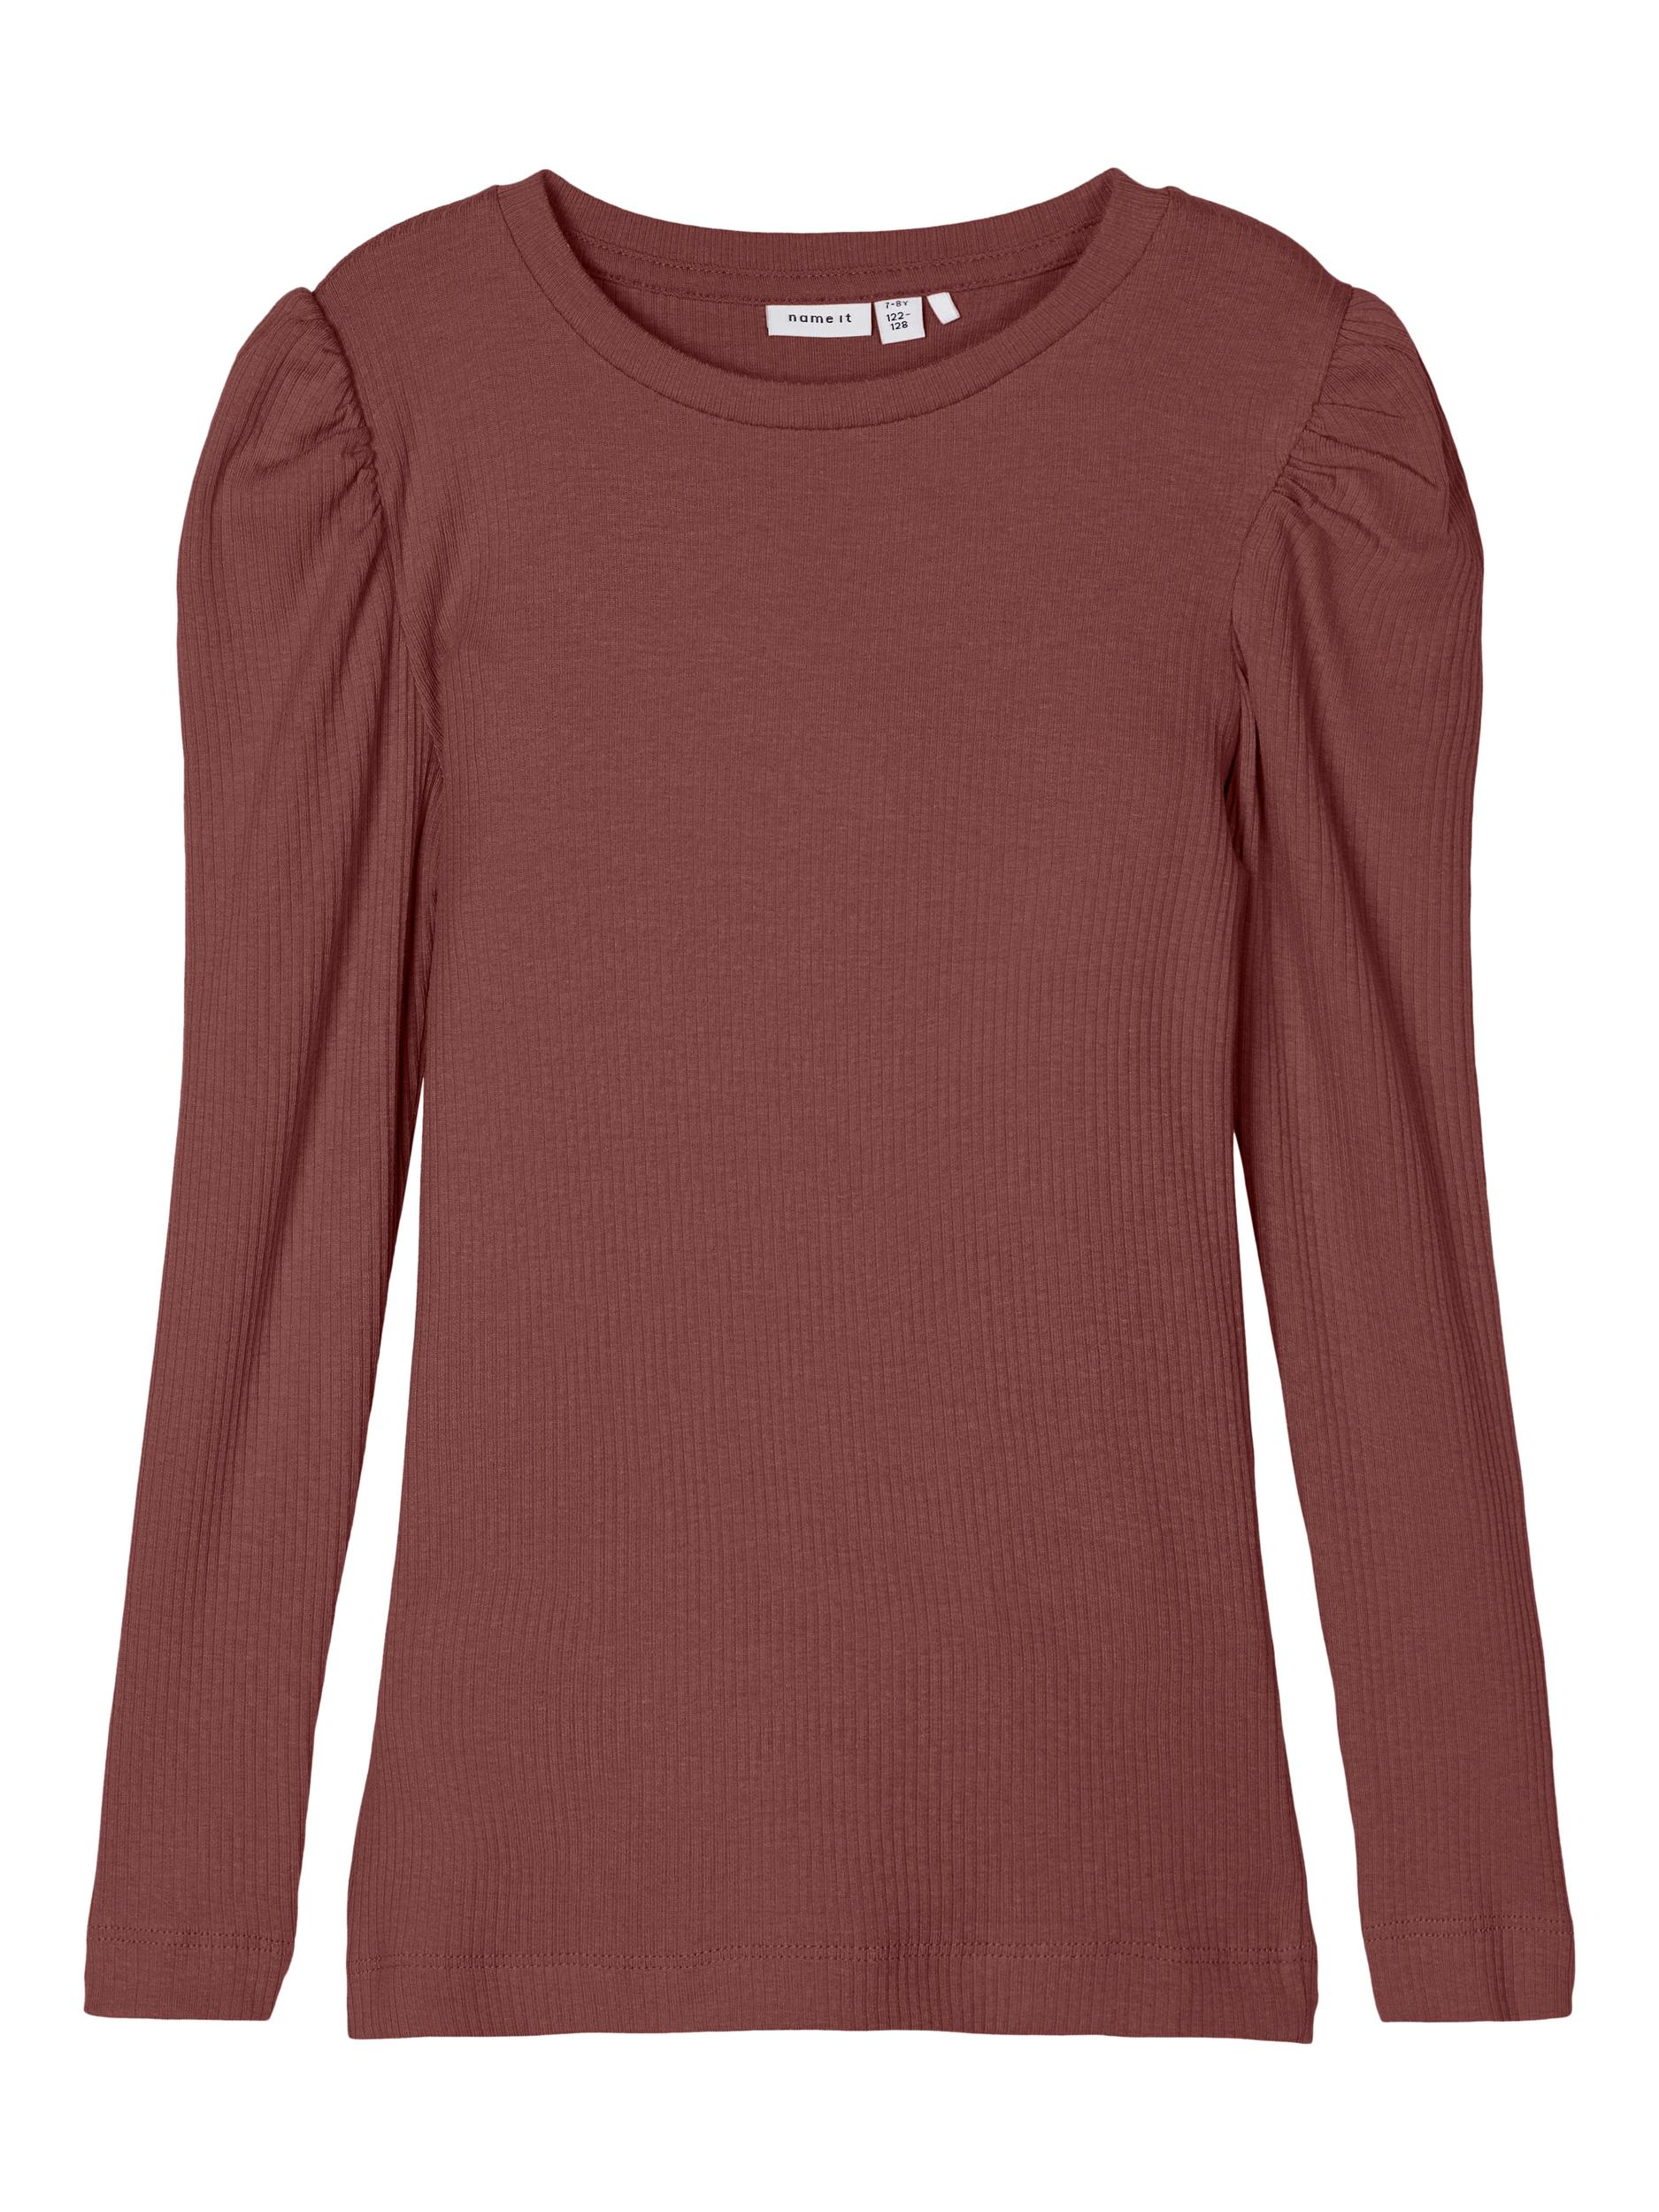 Name It Kabexi LS bluse, spiced apple, 116